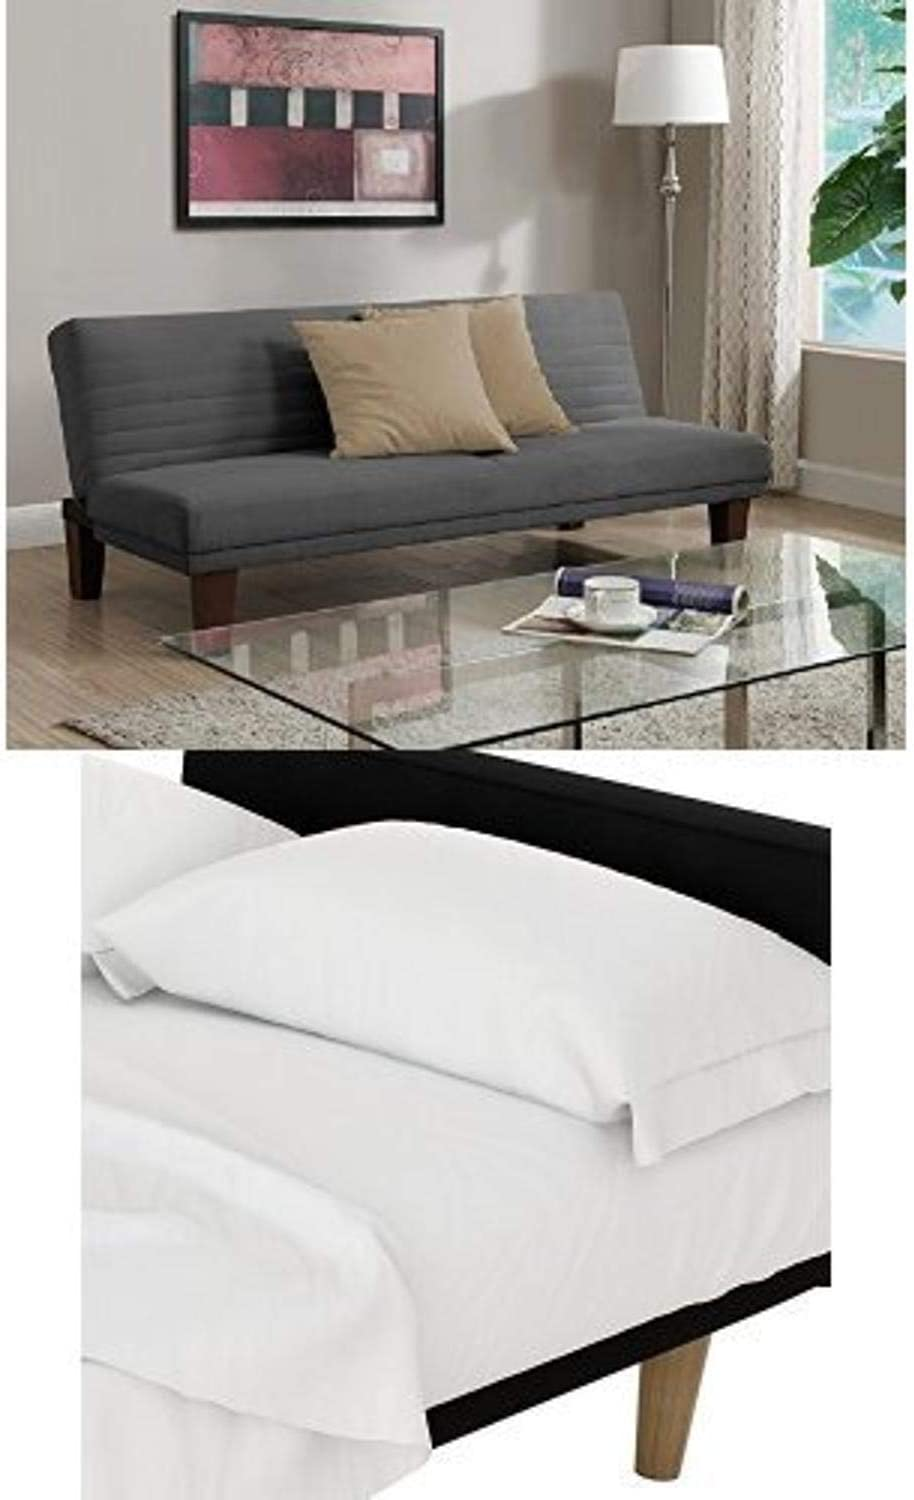 DHP Dillan Convertible Futon Couch Bed, Gray and Futon Sheet Set, White